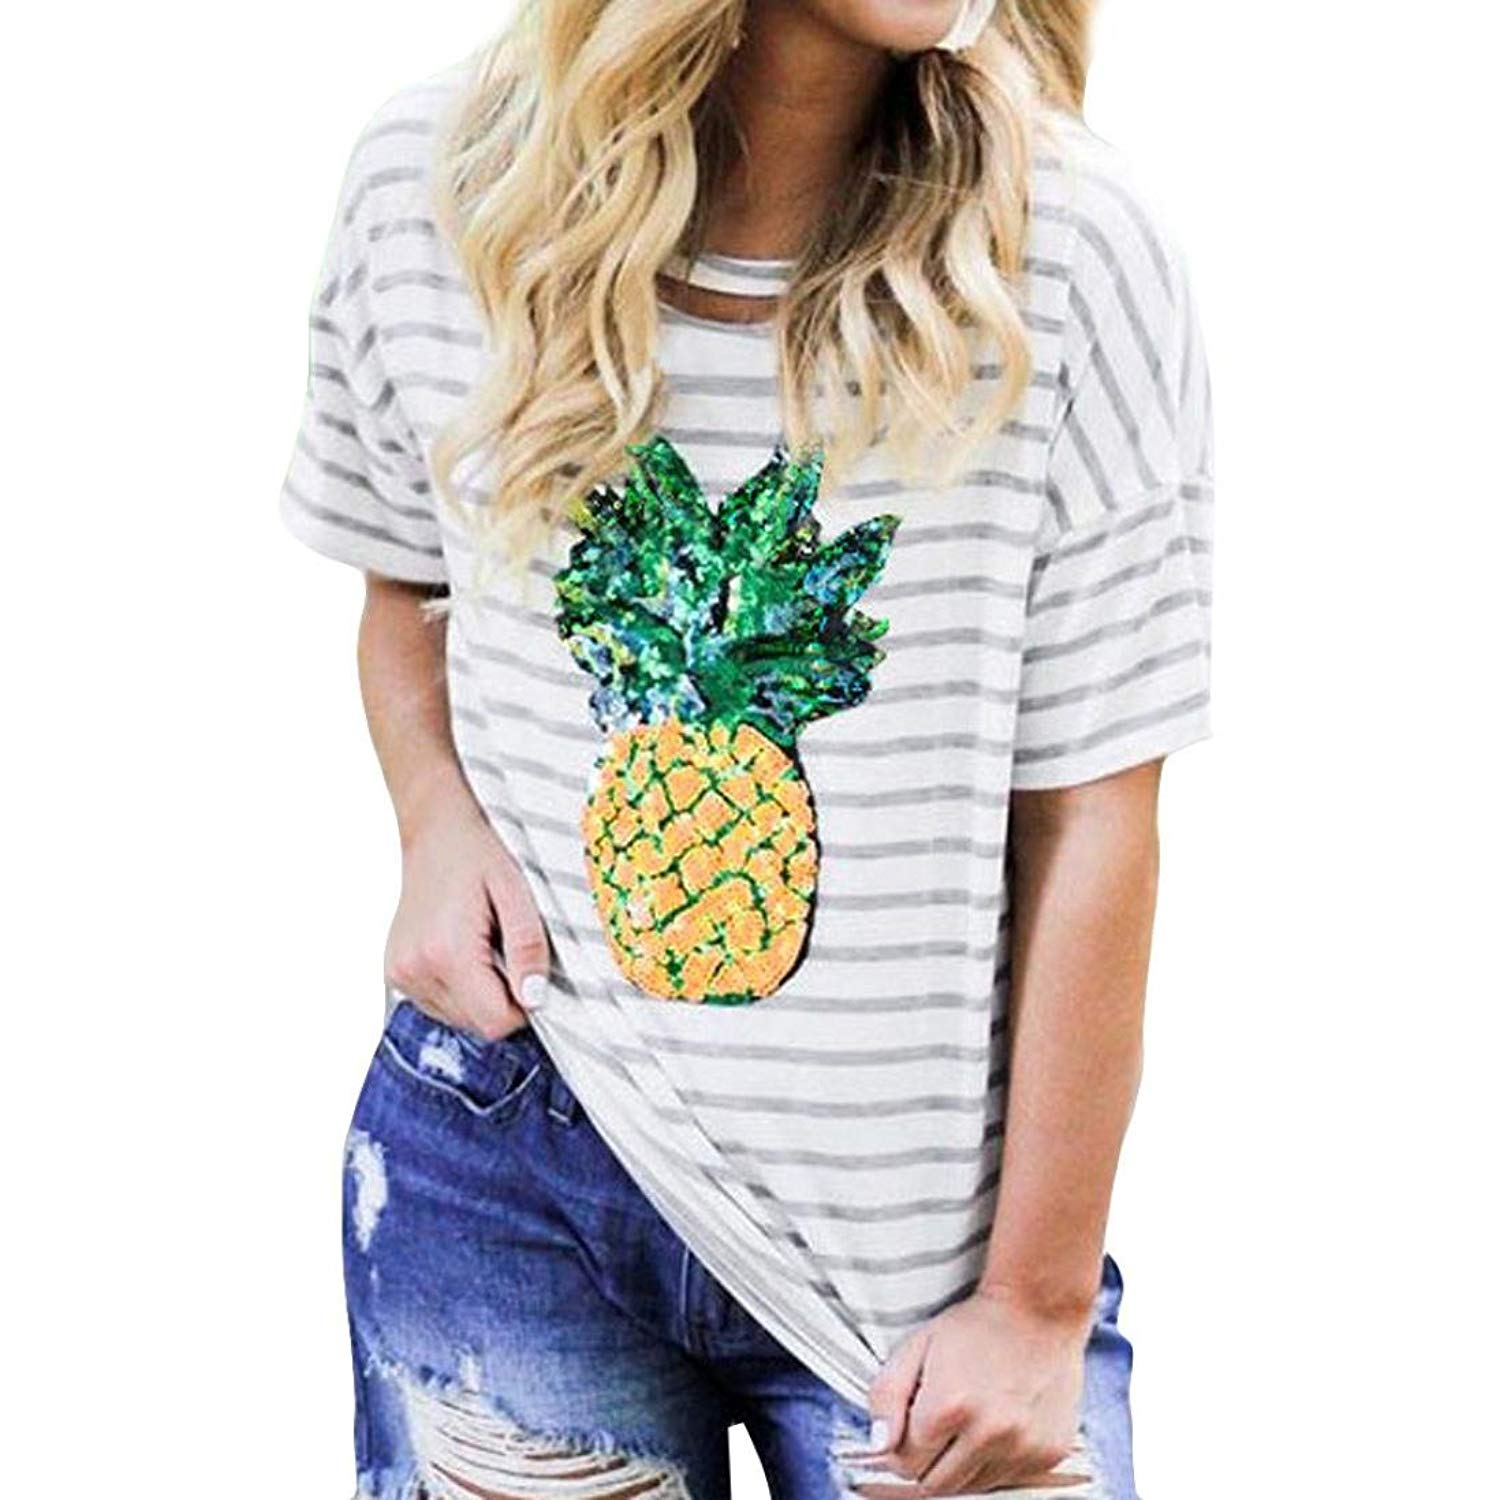 Ninasill Clearance ! Women Blouse, Hot Fashion Sequins Pineapple Print Stripe Top Short Sleeve T-Shirt Tops Tank